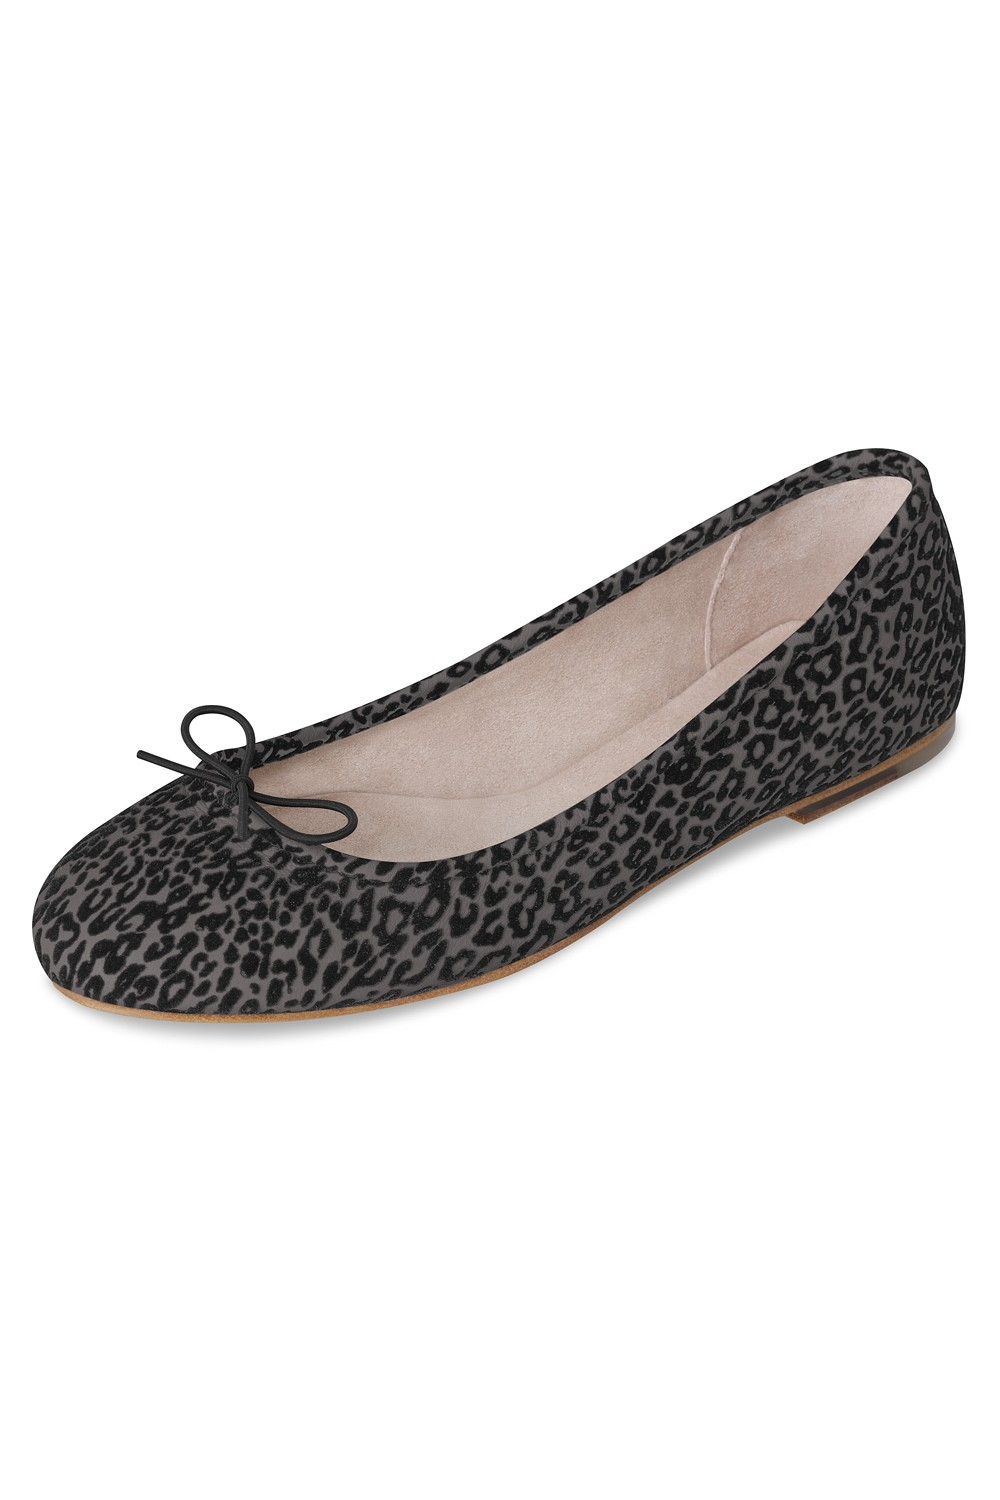 Arabella Ladies Ballet Flats Womens Fashion Shoes